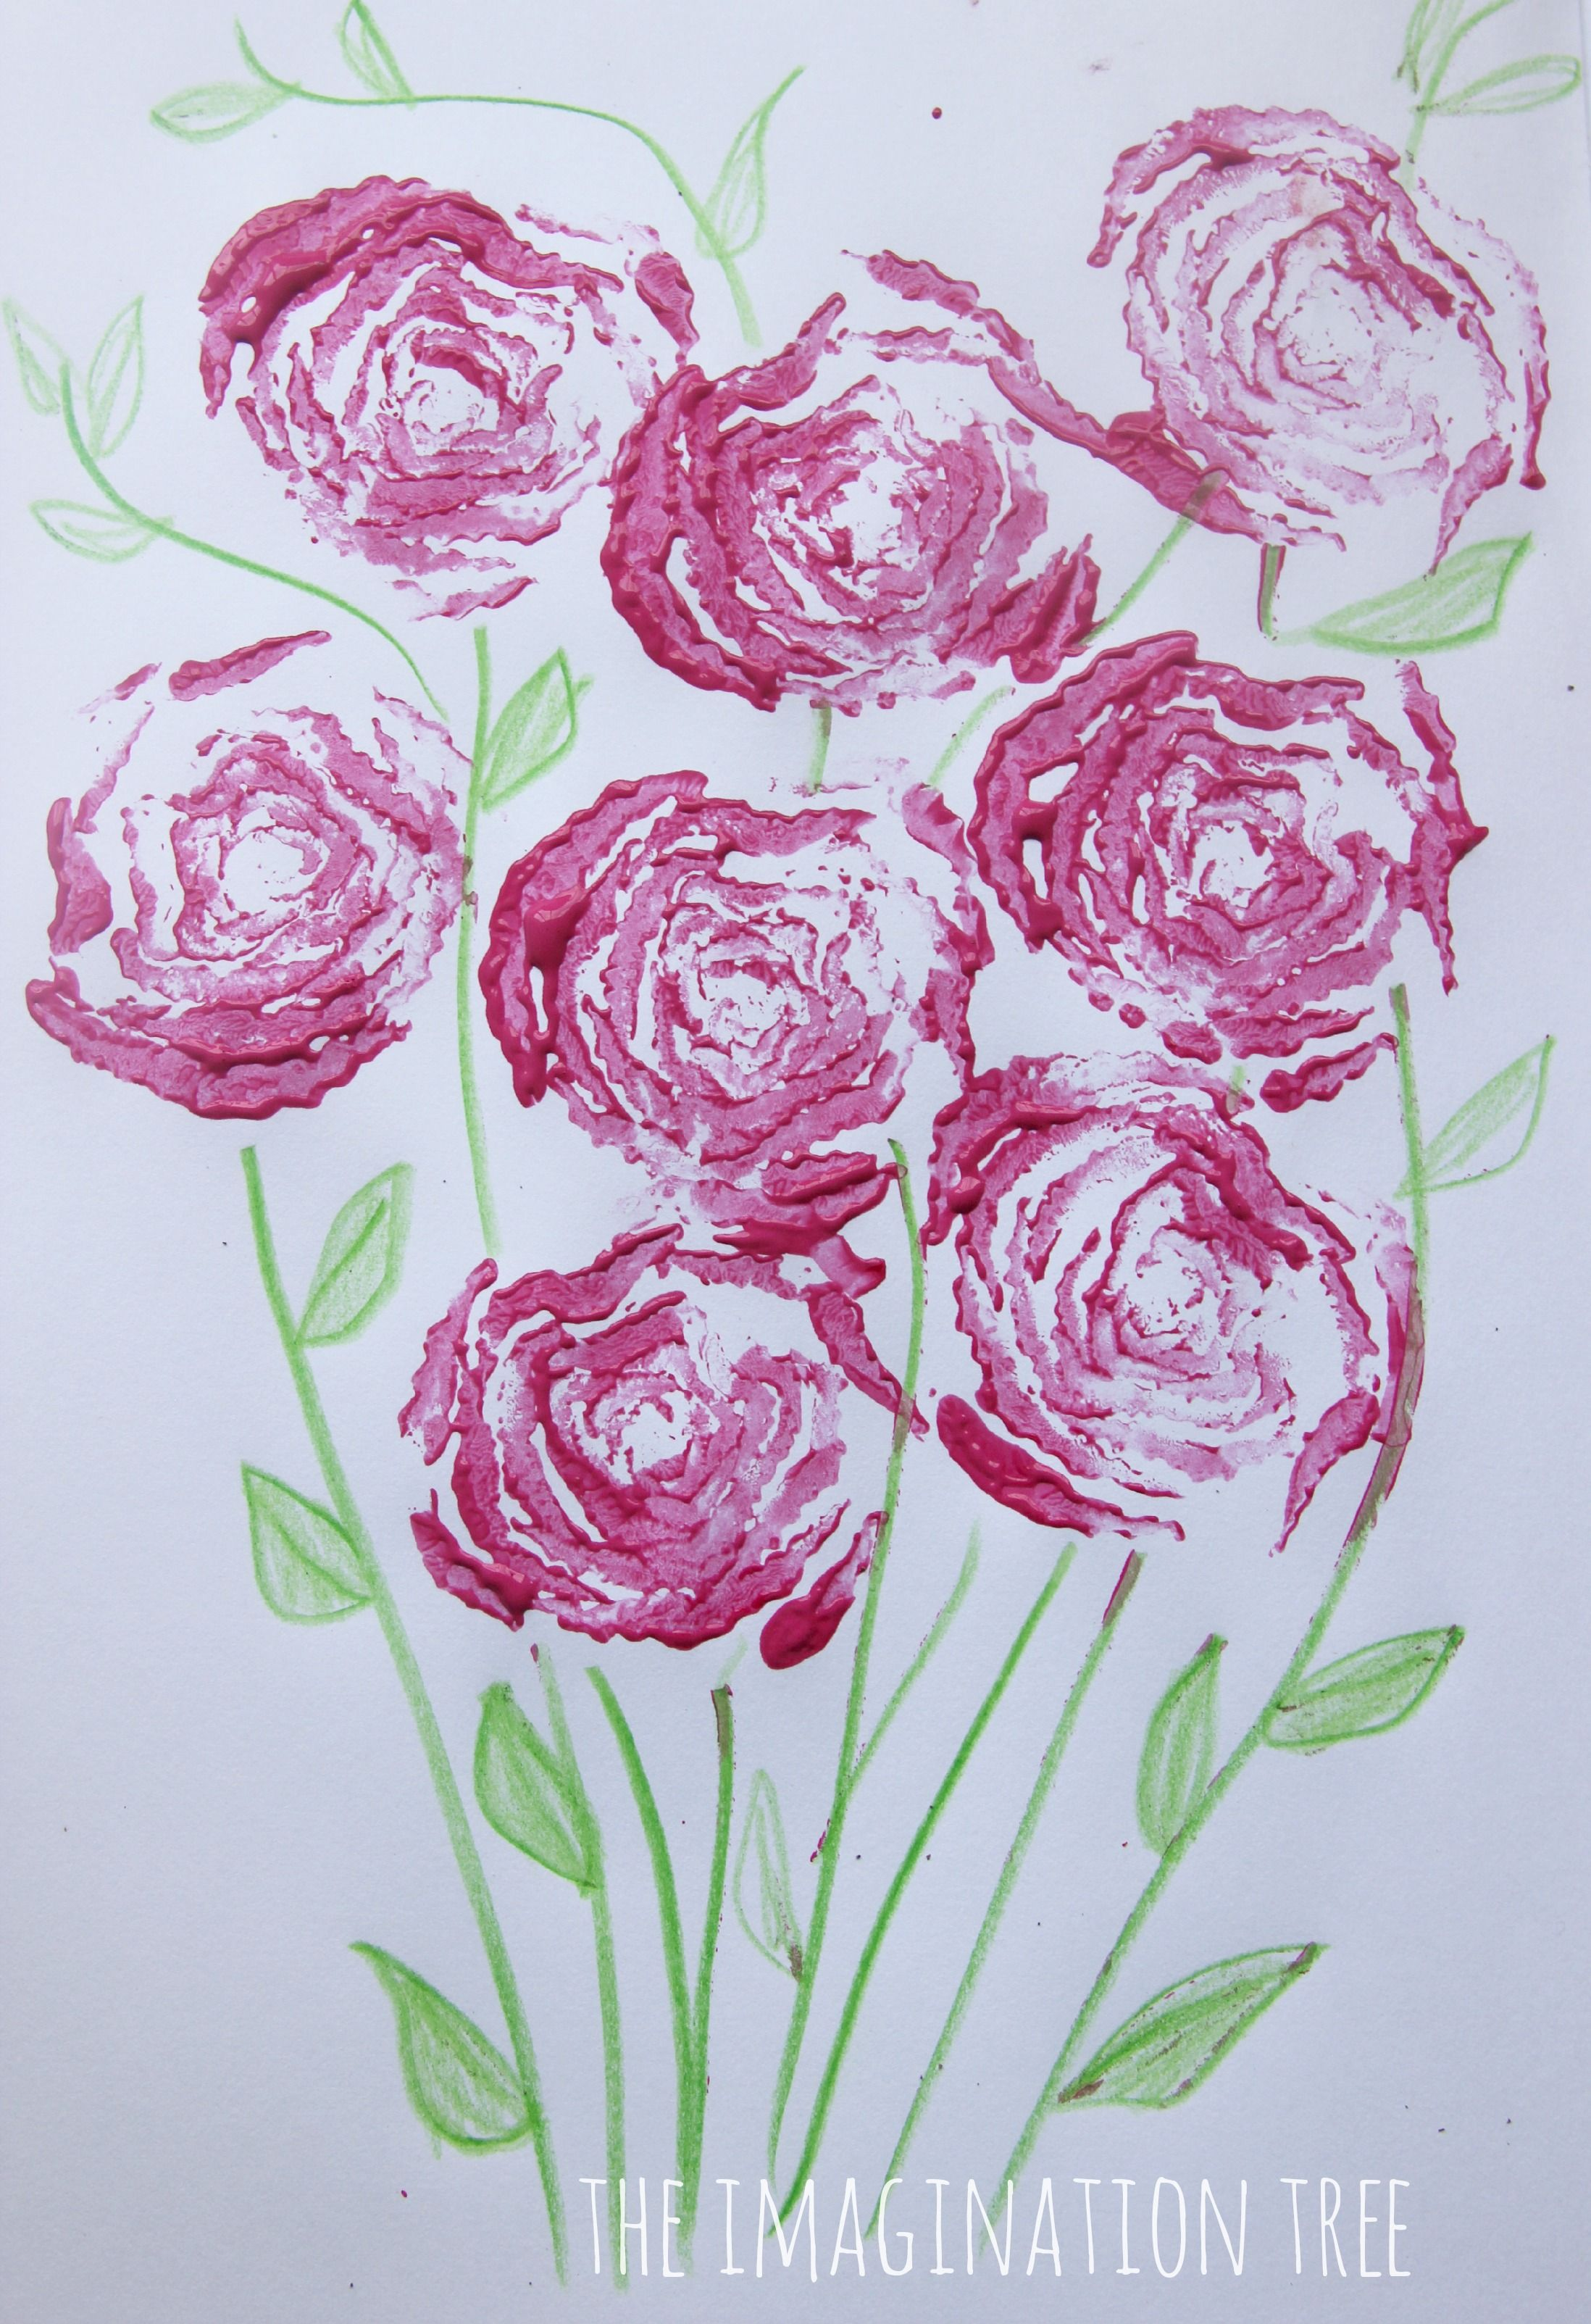 Printing Roses With Celery Stalks The Imagination Tree Easy Arts And Crafts Spring Flower Crafts Flower Crafts